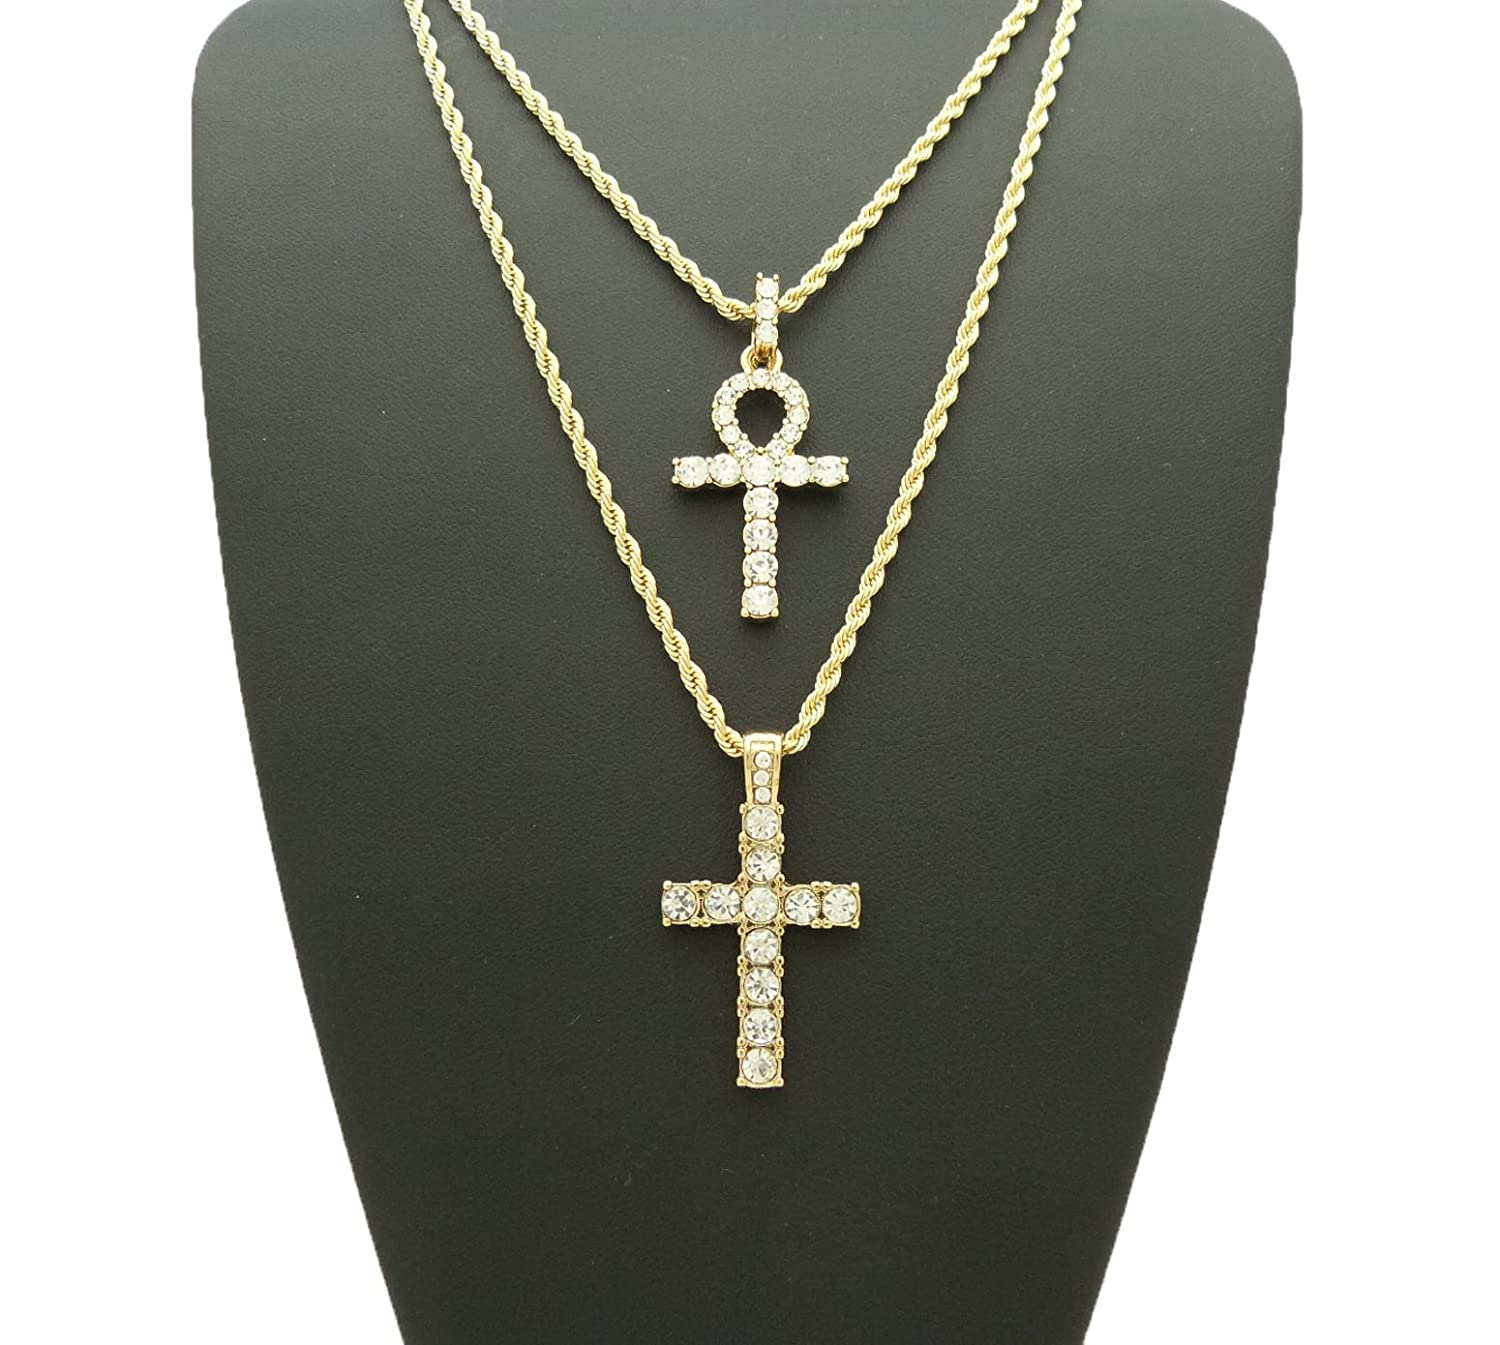 w choker micro women sterling ladies chains ankh chain silver cross tennis diamond